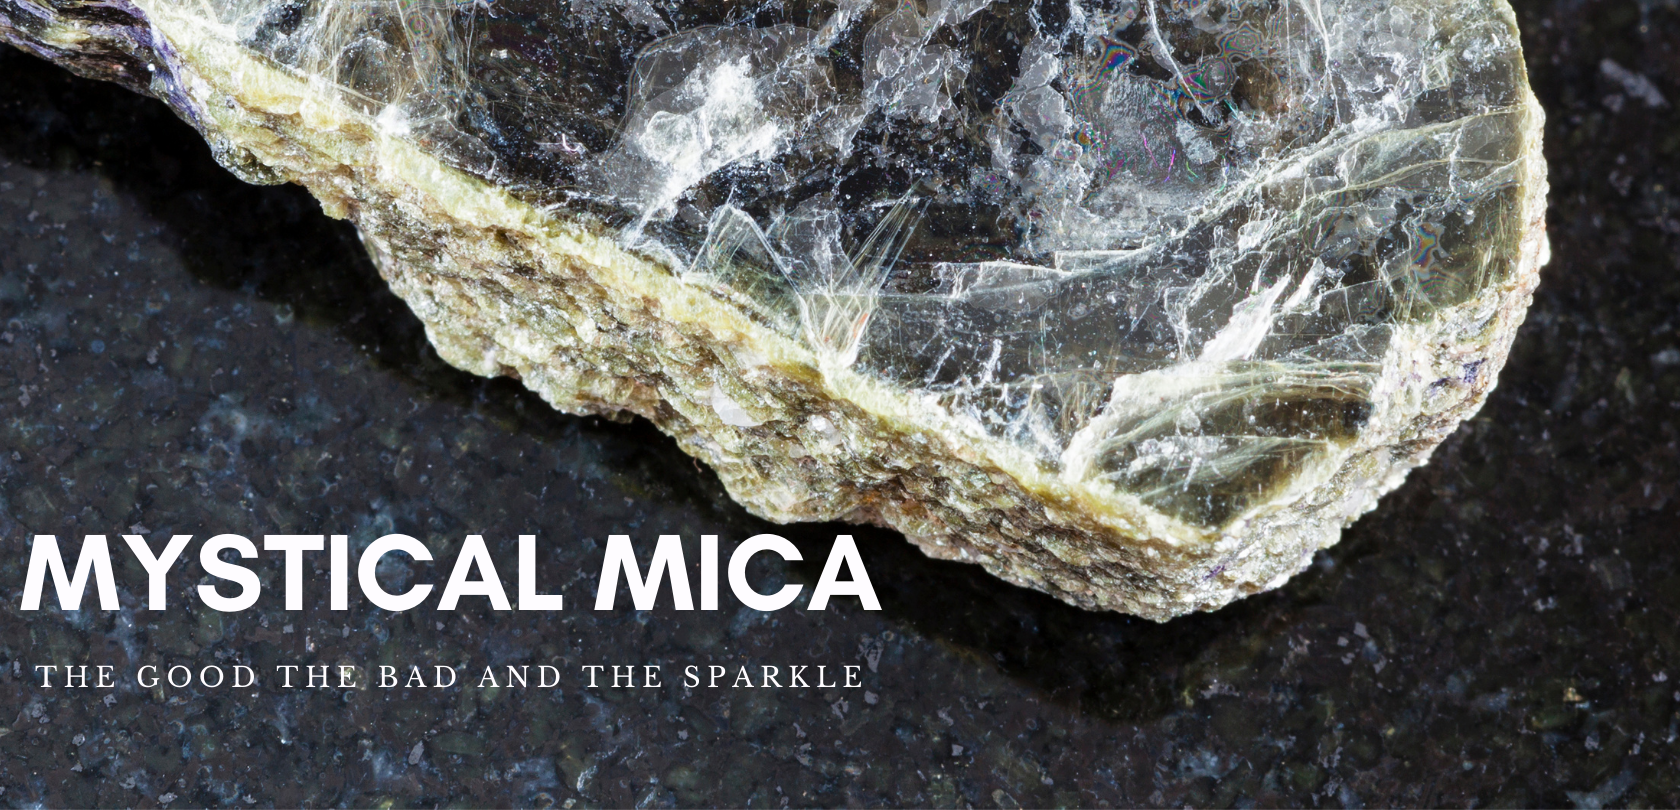 Mystical Mica. The good. the bad, and the sparkle.